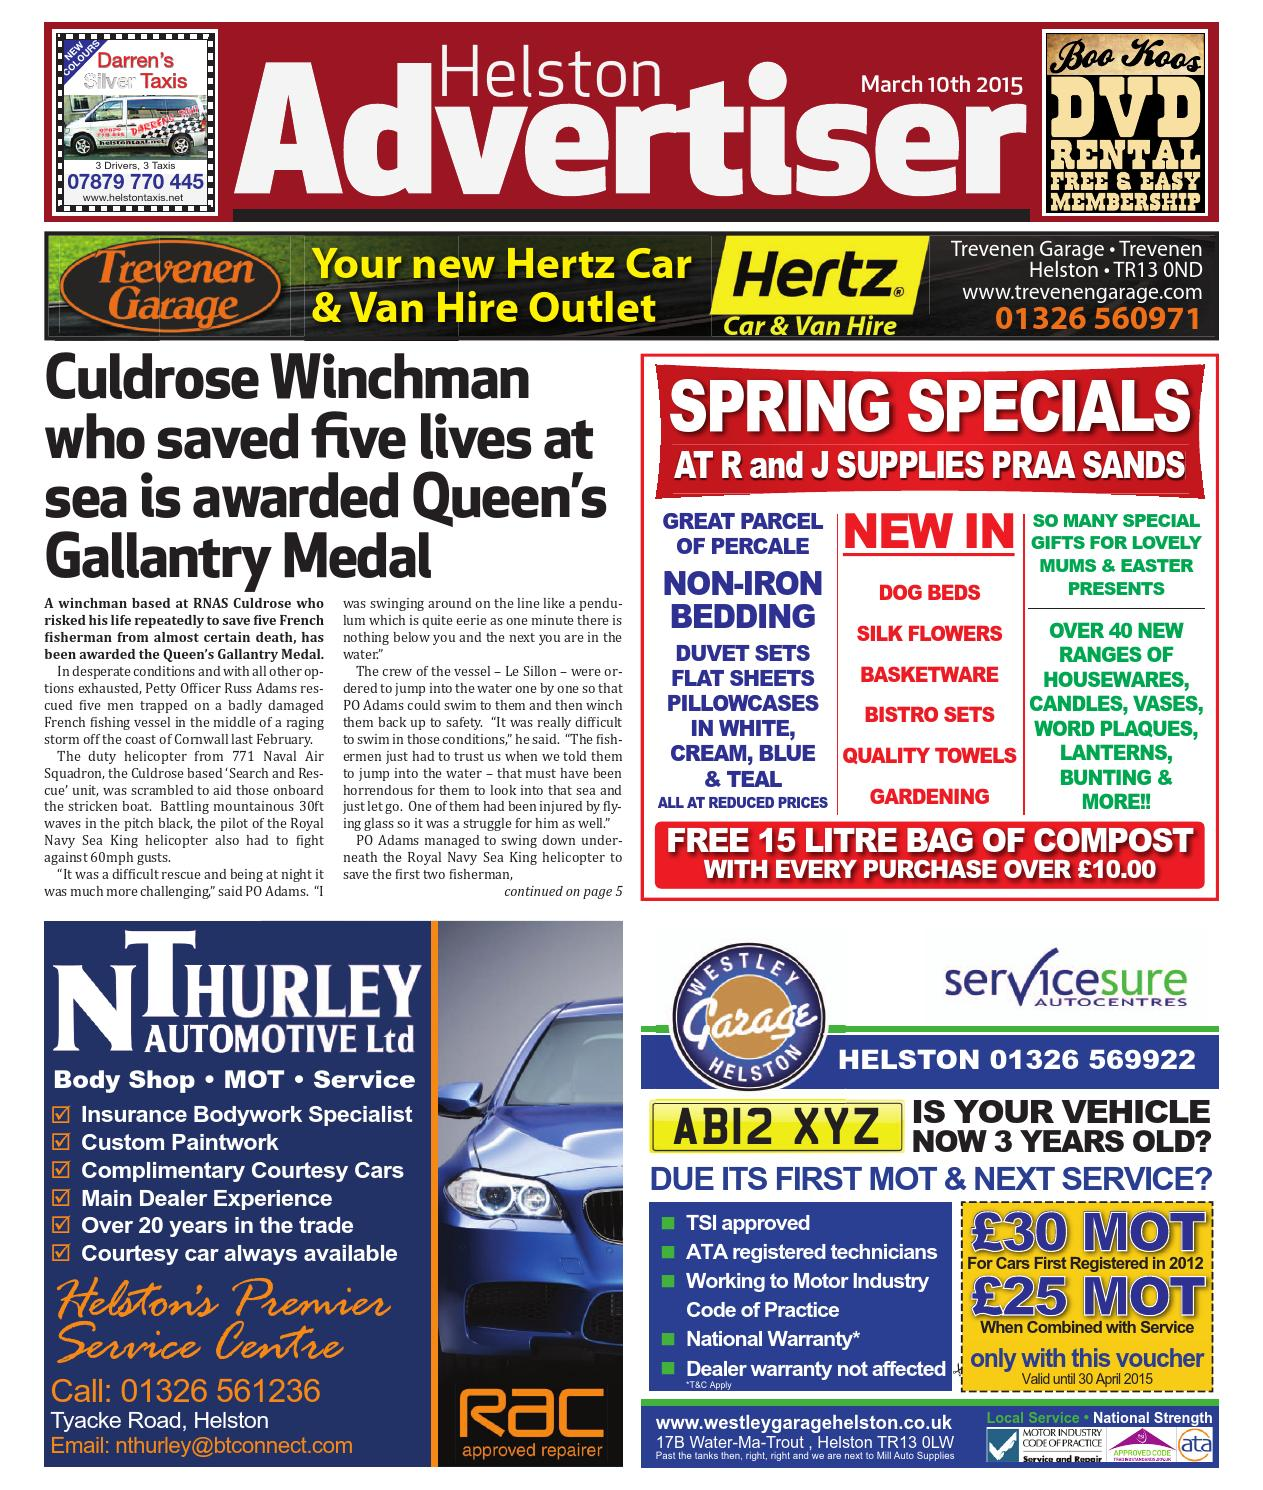 Helston advertiser 10th march 2015 by helston advertiser issuu fandeluxe Gallery